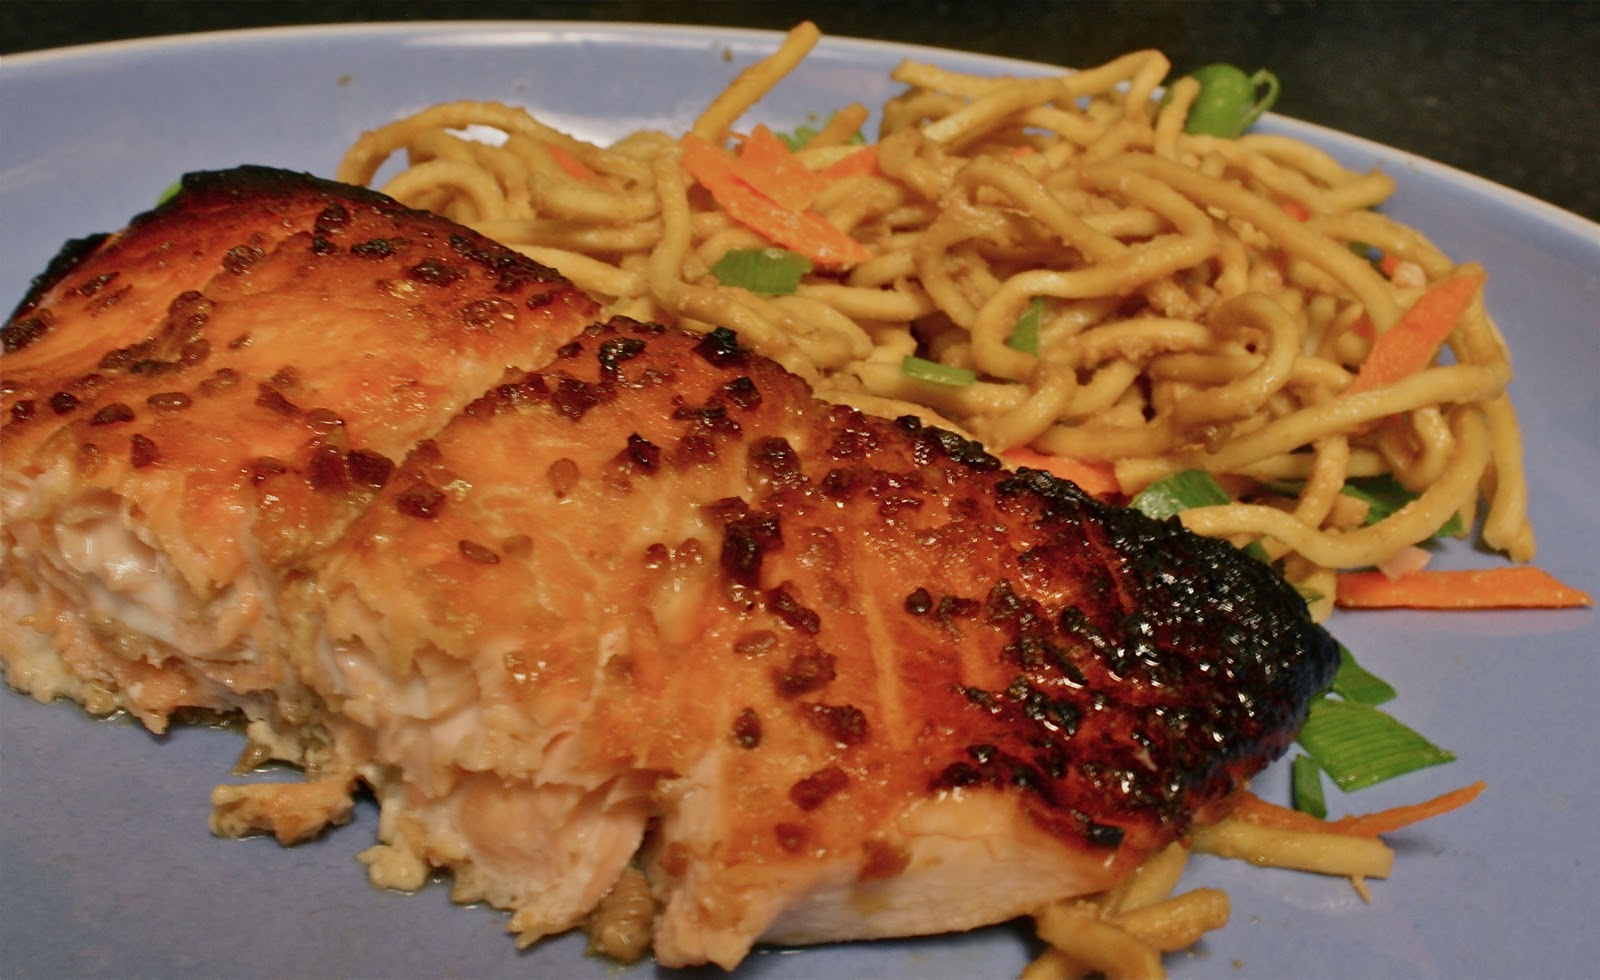 won Amanda over with this salmon. Paired with the peanut noodles ...